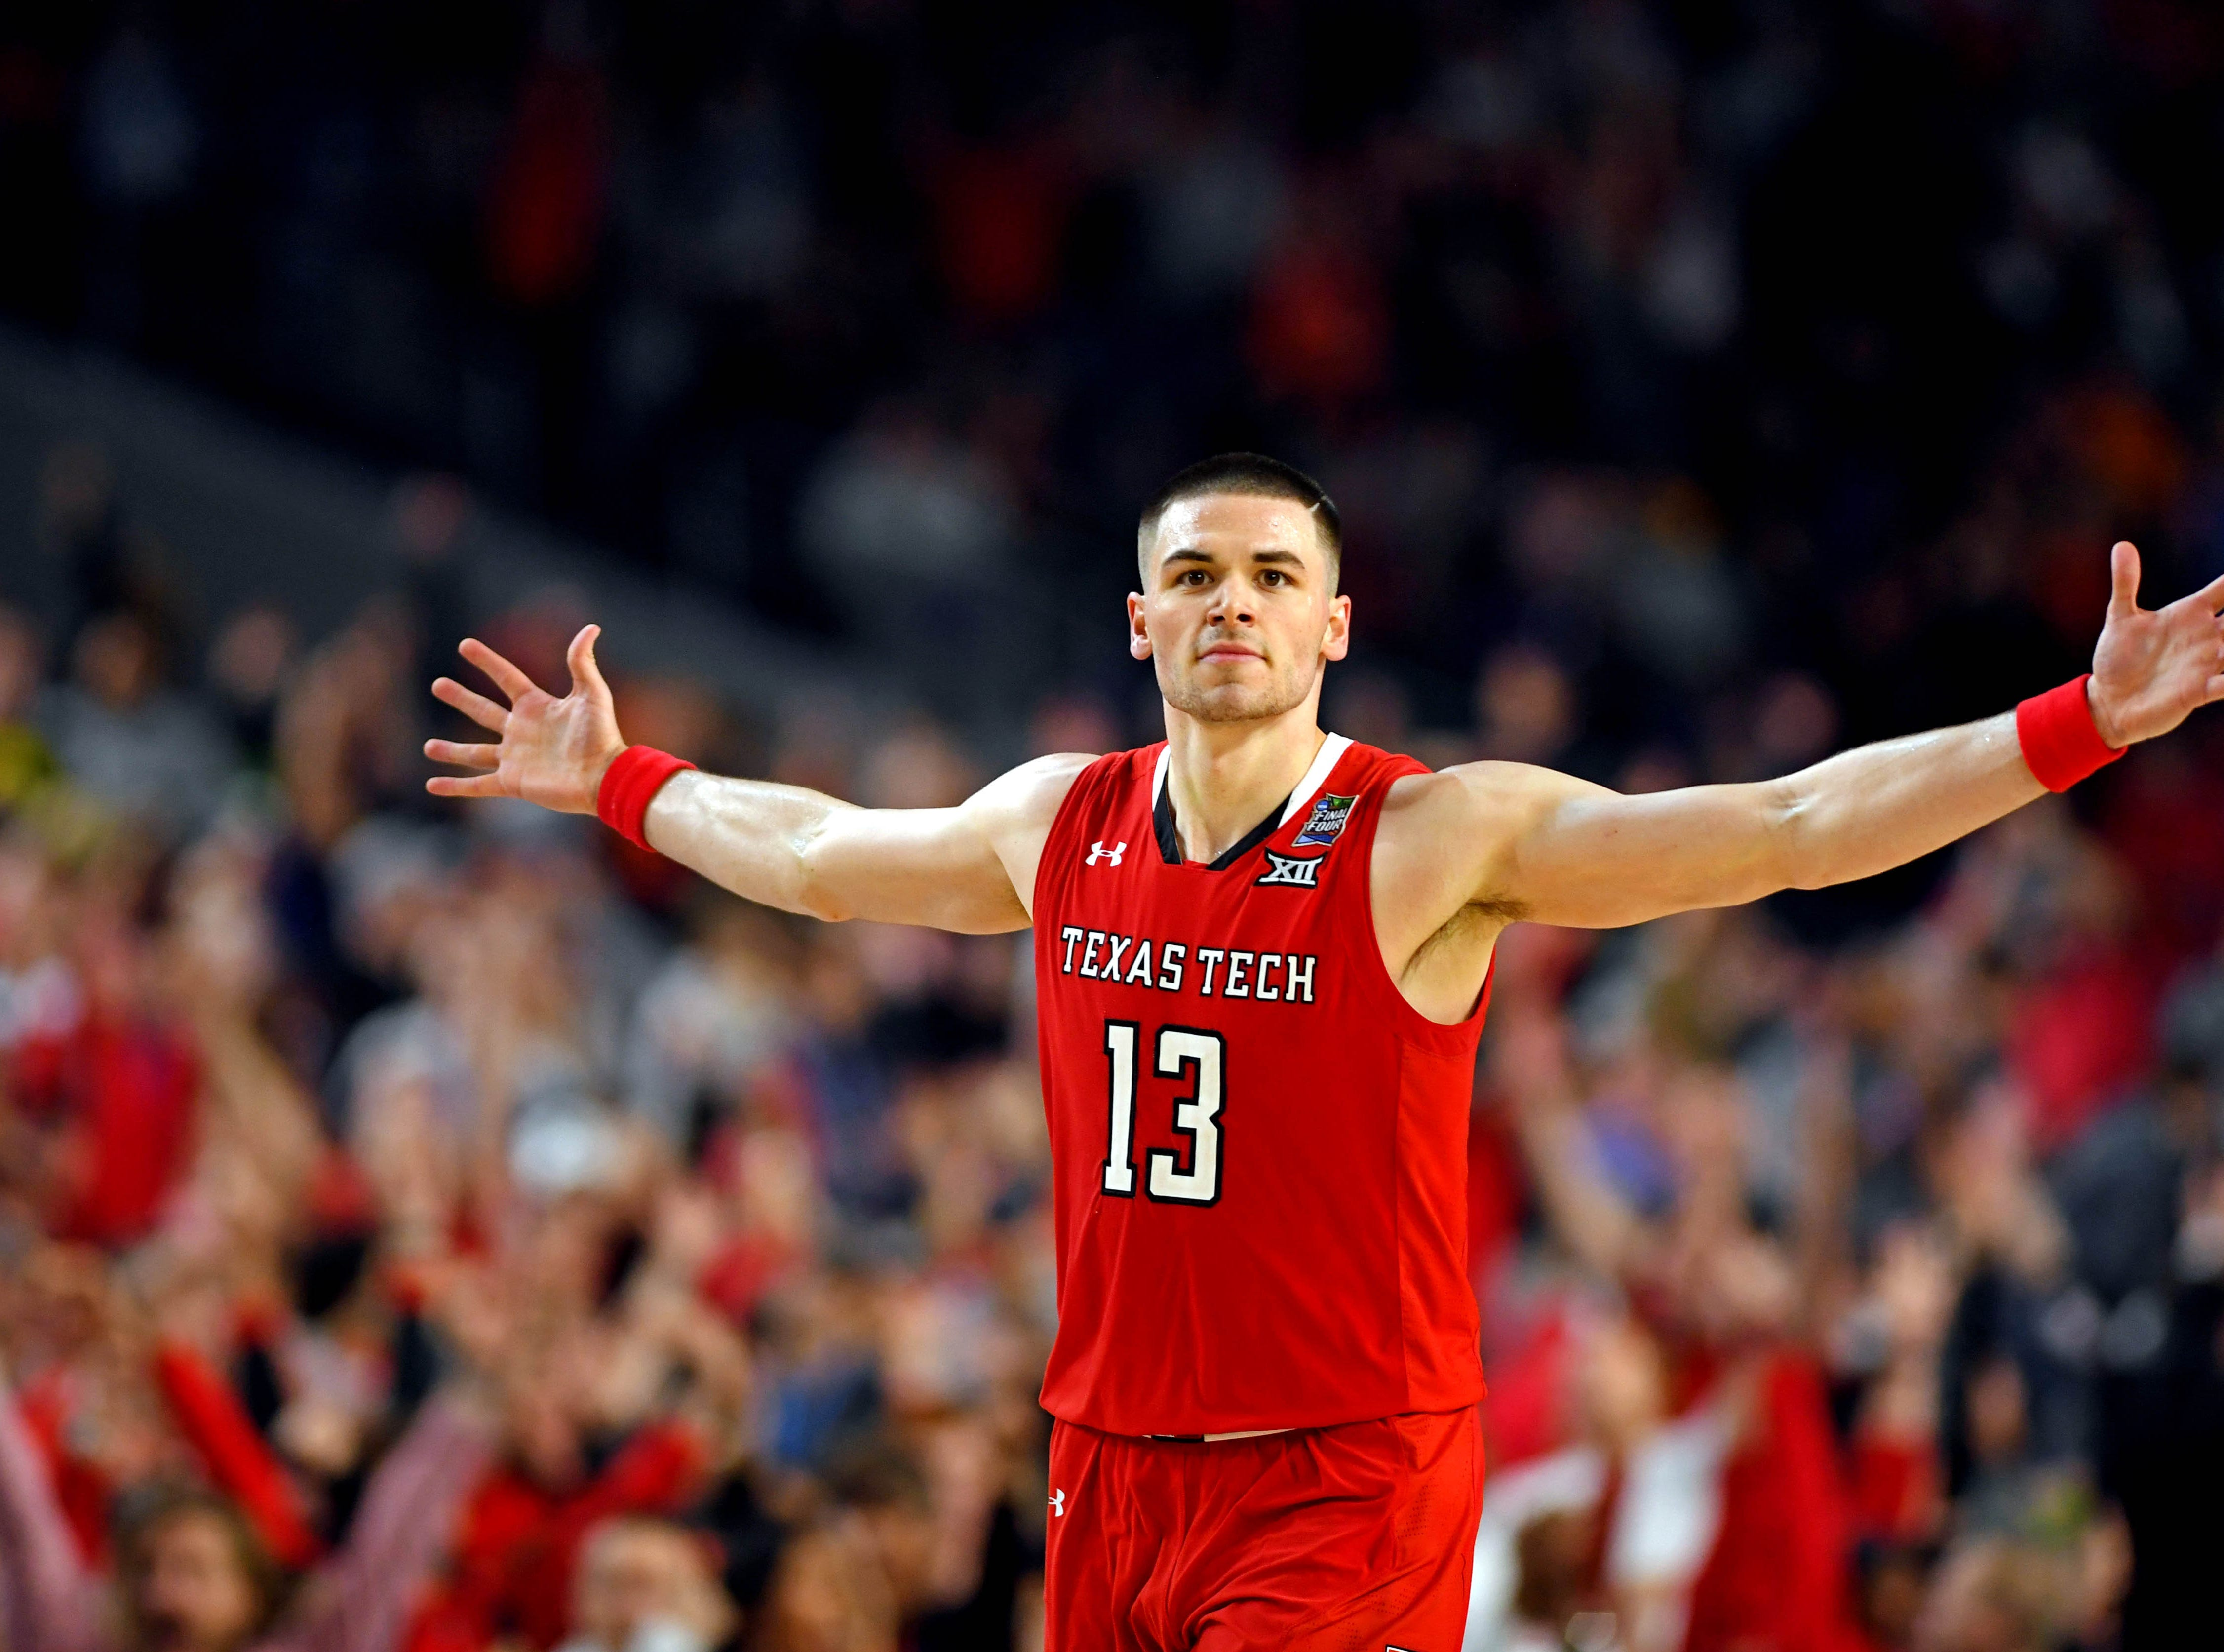 Apr 6, 2019; Minneapolis, MN, USA; Texas Tech Red Raiders guard Matt Mooney (13) reacts after a play during the second half against the Michigan State Spartans in the semifinals of the 2019 men's Final Four at US Bank Stadium. Mandatory Credit: Bob Donnan-USA TODAY Sports